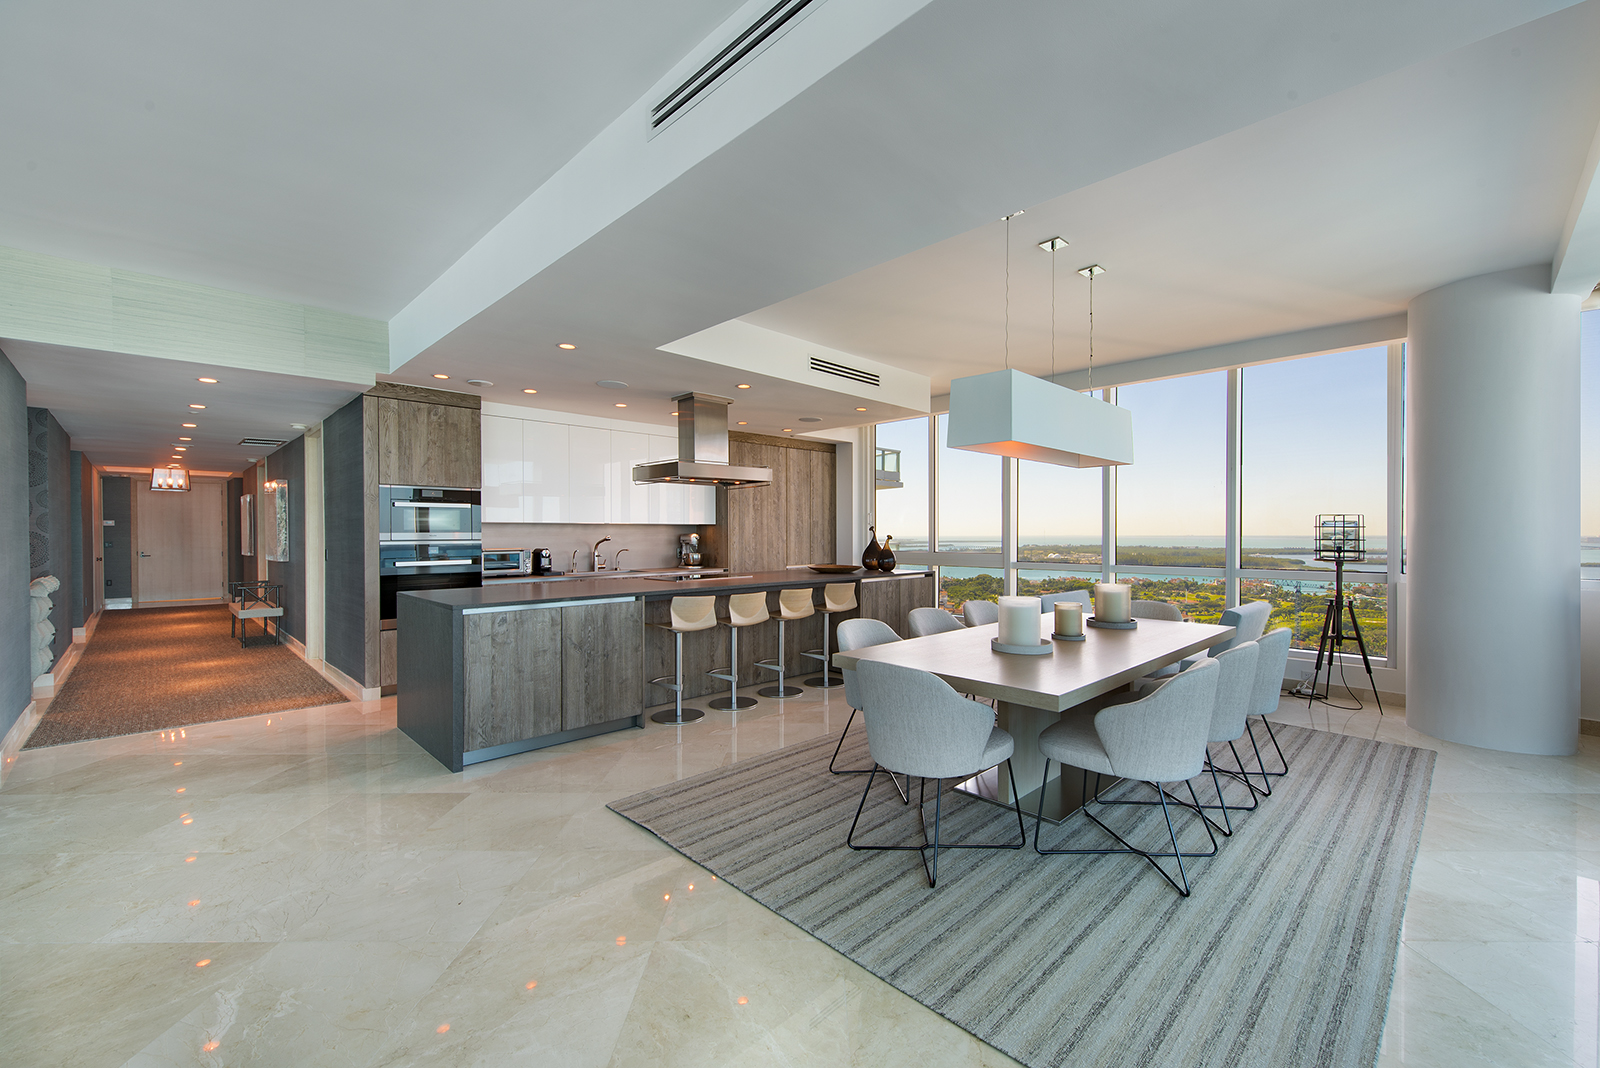 A modern and open kitchen in a high-rise apartment overlooking South Beach, the ocean, and Downtown Miami